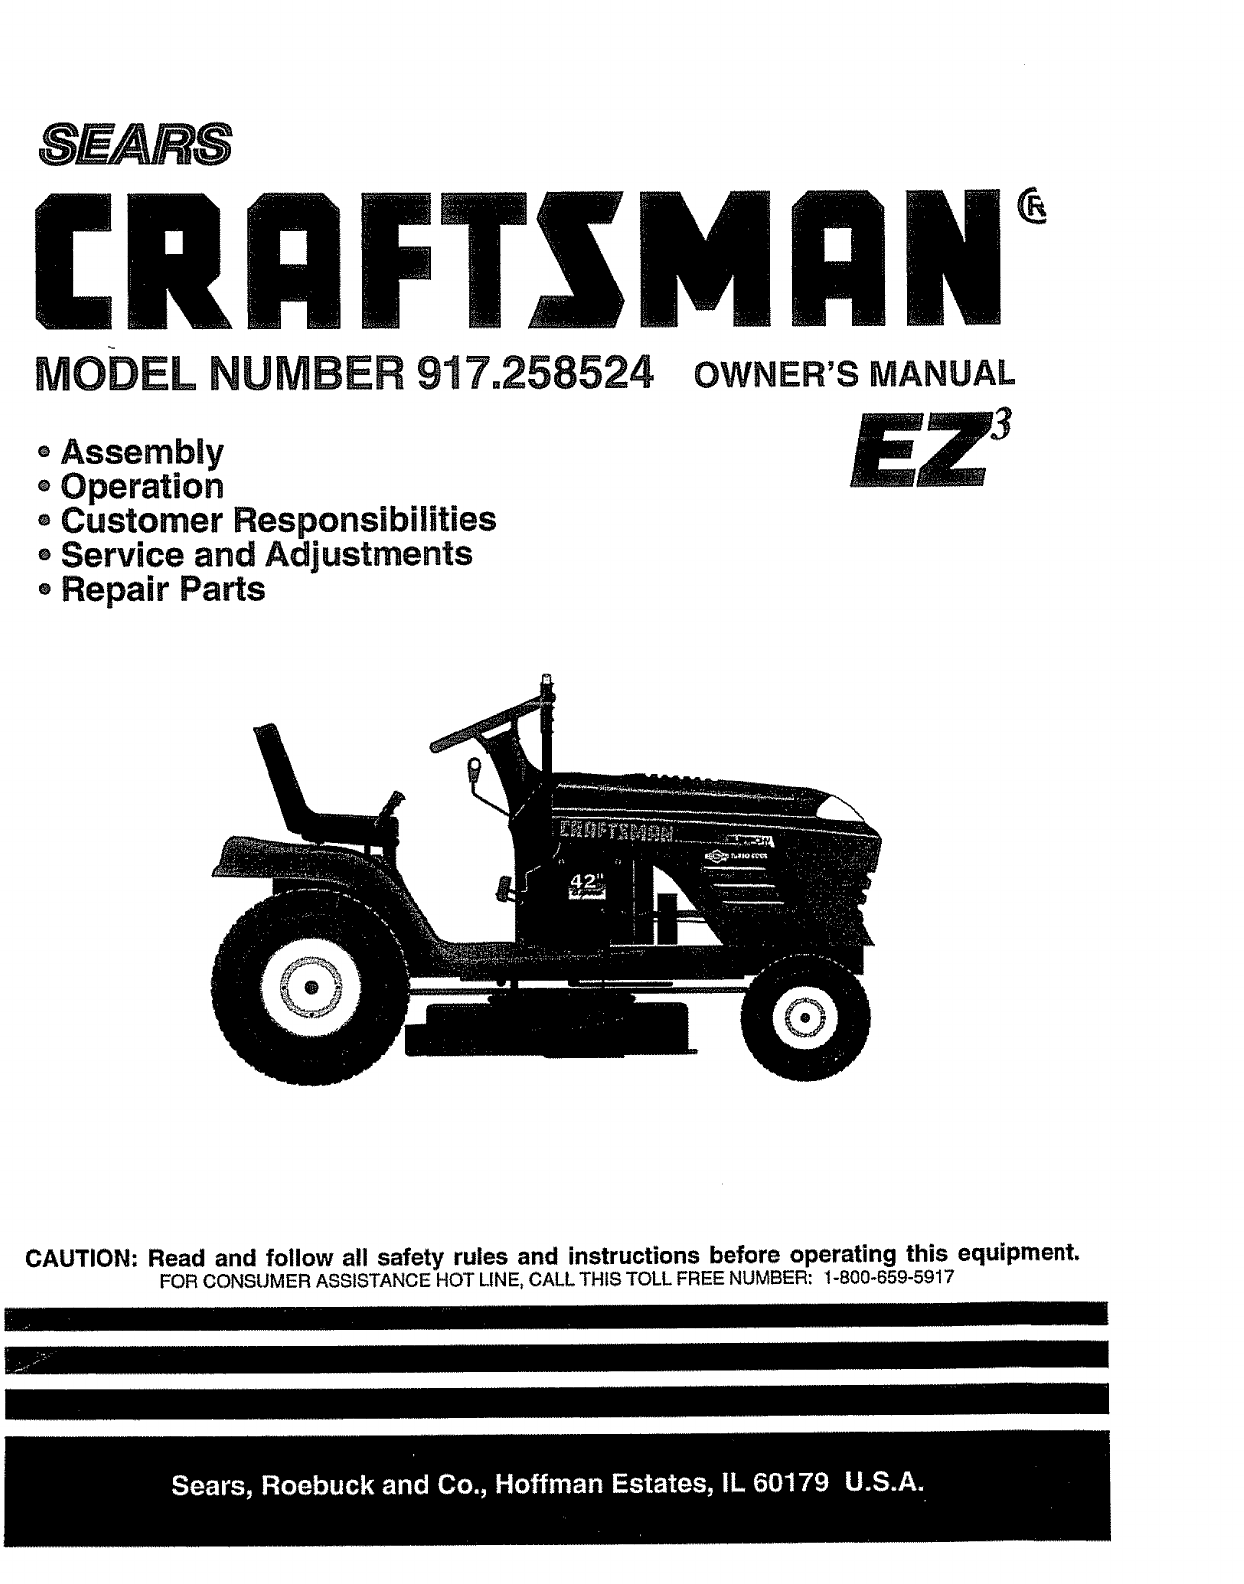 Sears Craftsman Lawn Mower Manuals Online